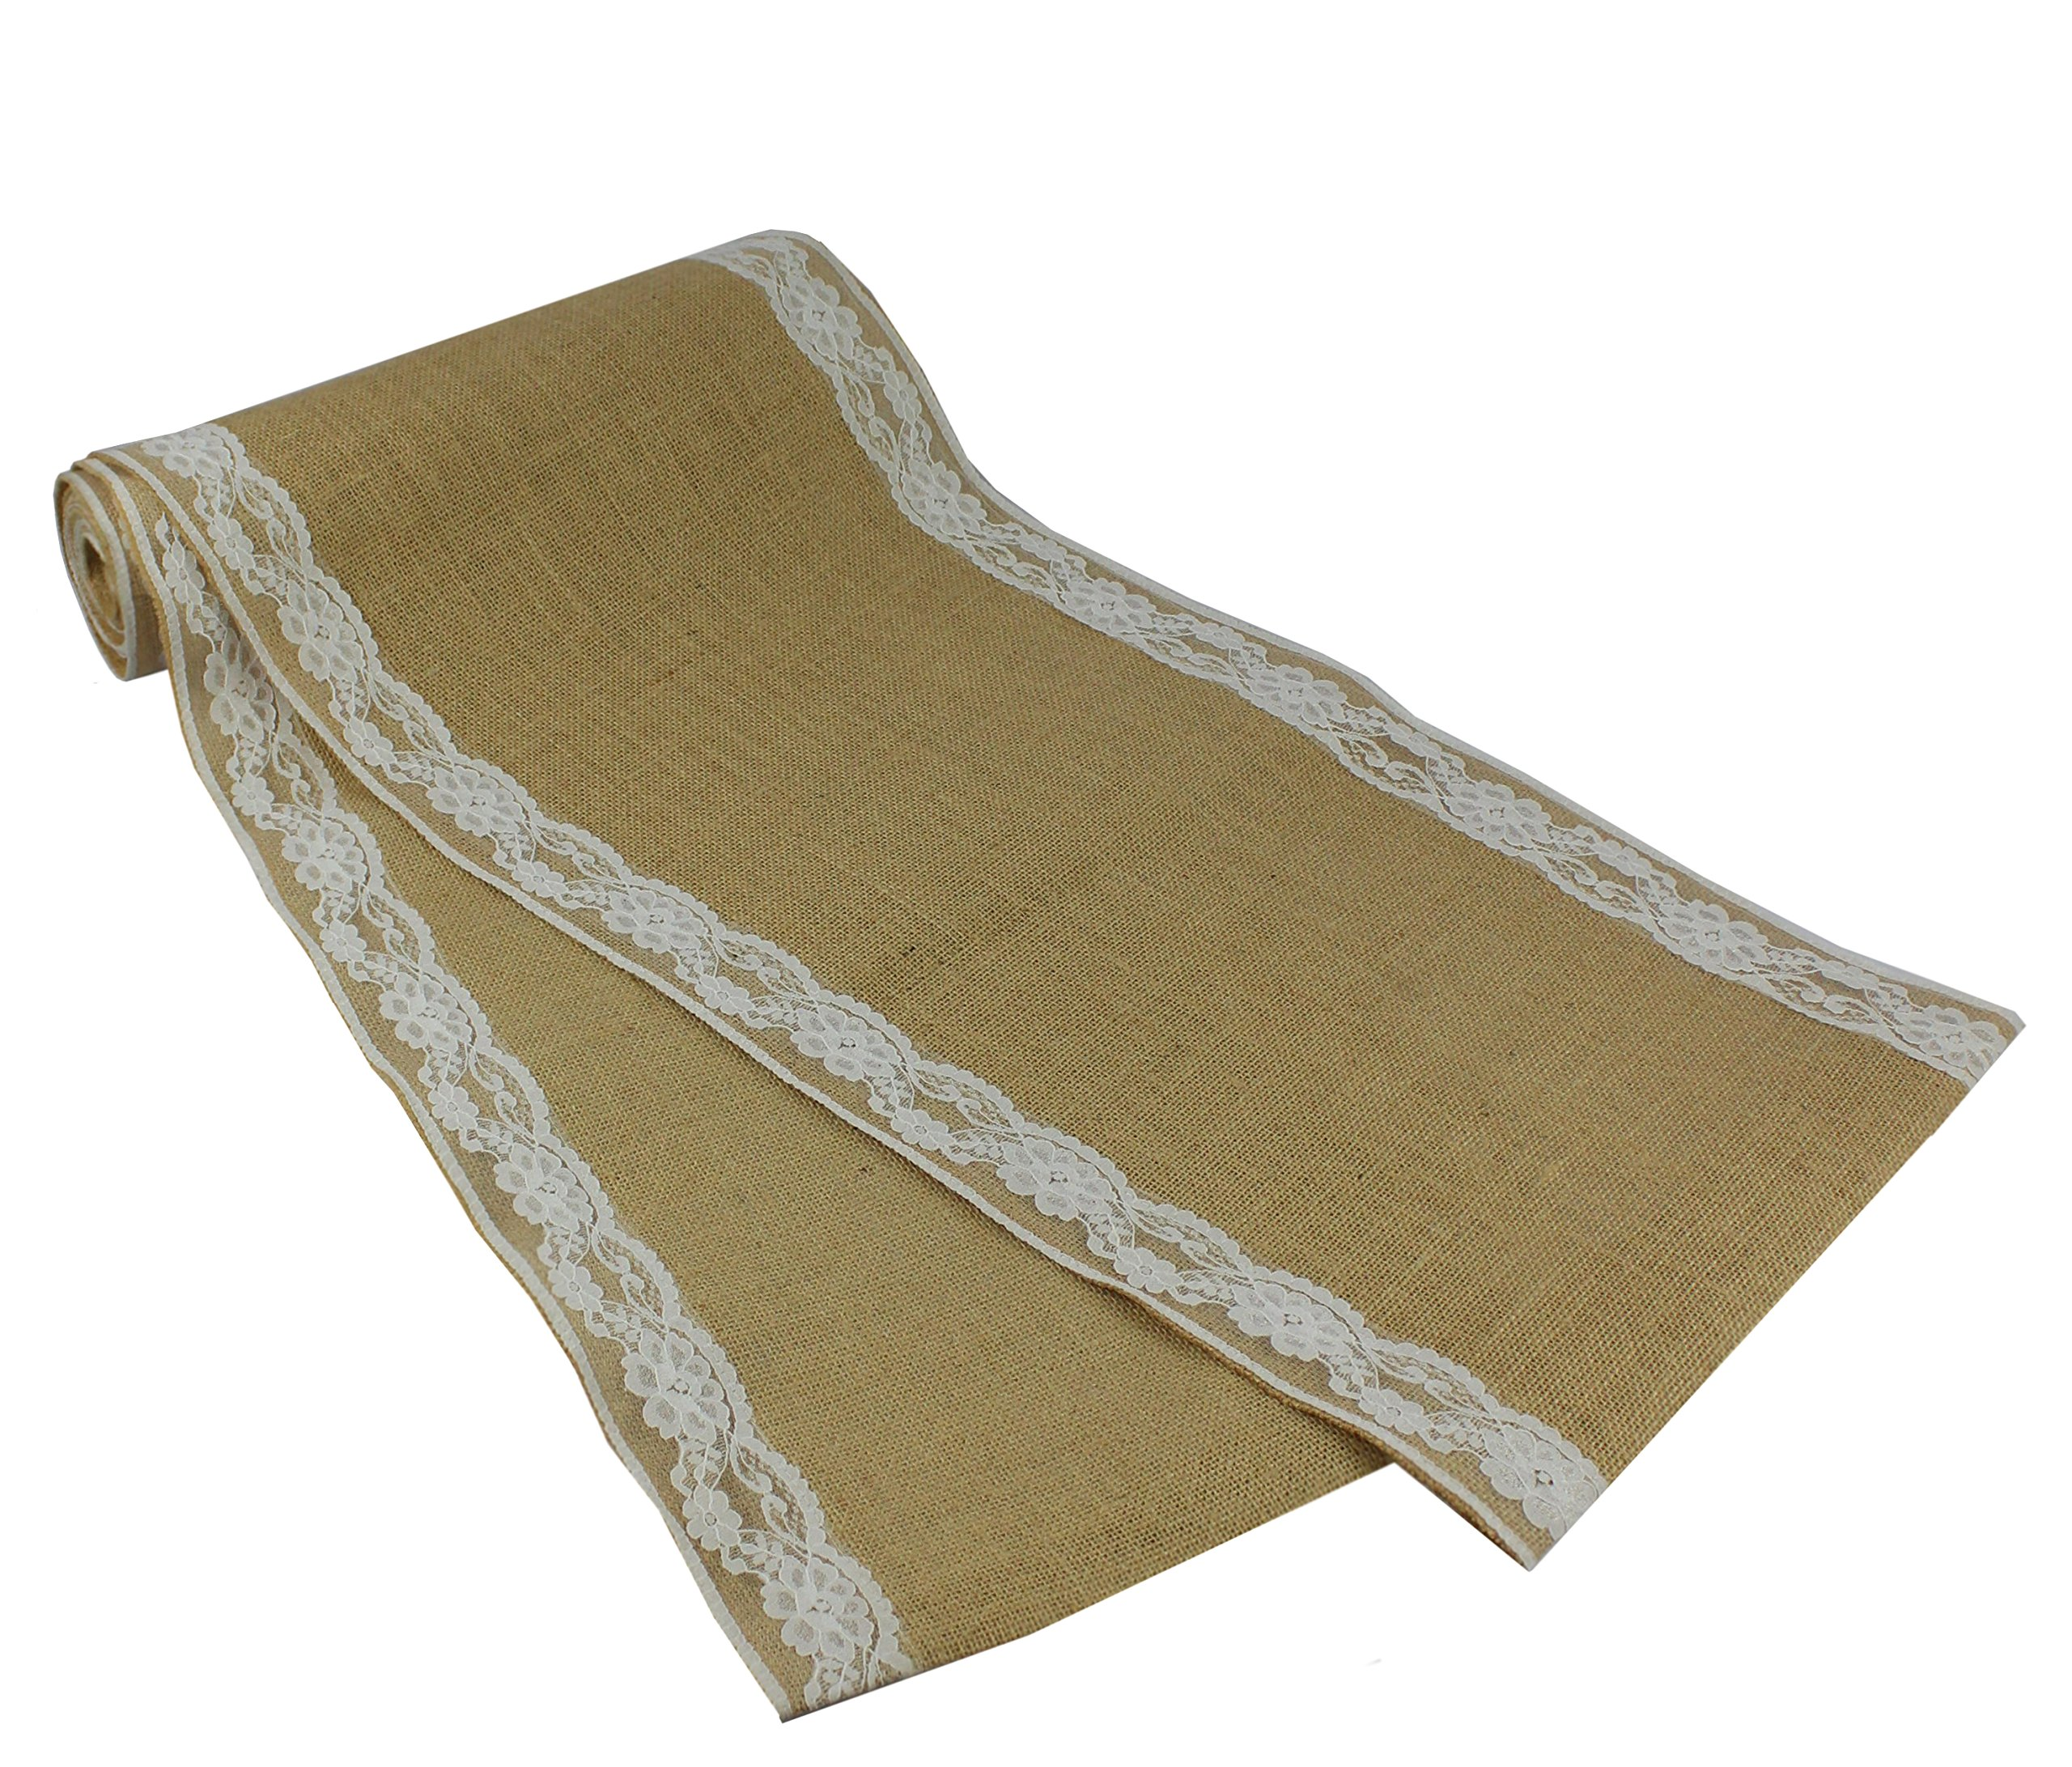 Cotton Craft - 2 Pack - Jute Burlap with Lace Table Runner 12x108 - Natural - Perfect Accessory to Dress up Your Dinner Table - Spot Clean Only